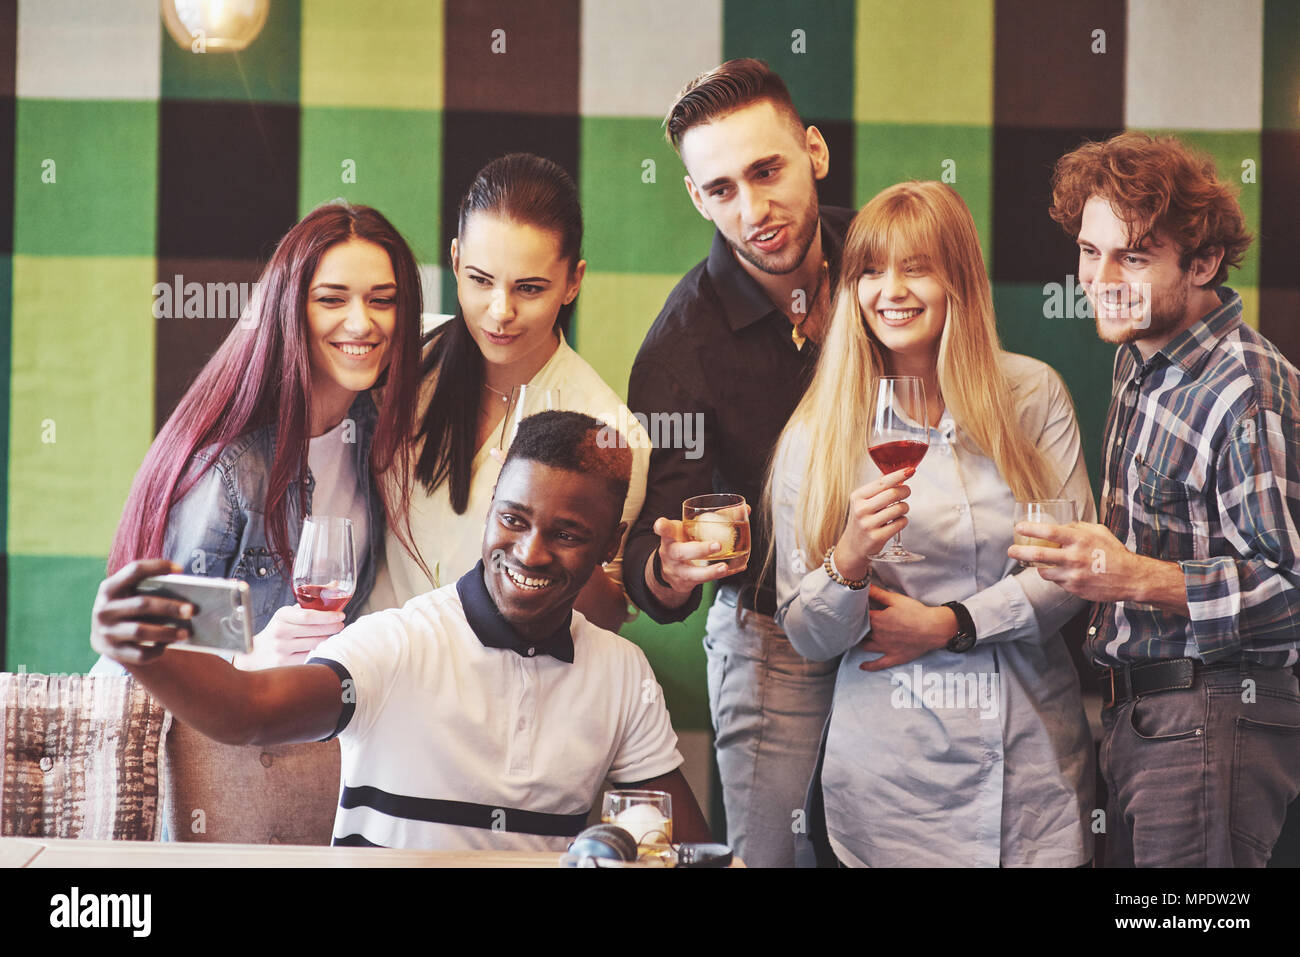 Friends having fun at restaurant.Two boys and four girls drinking making selfie, making peace sign and laughing. On foreground woman holding smart phone. All wear casual clothes - Stock Image